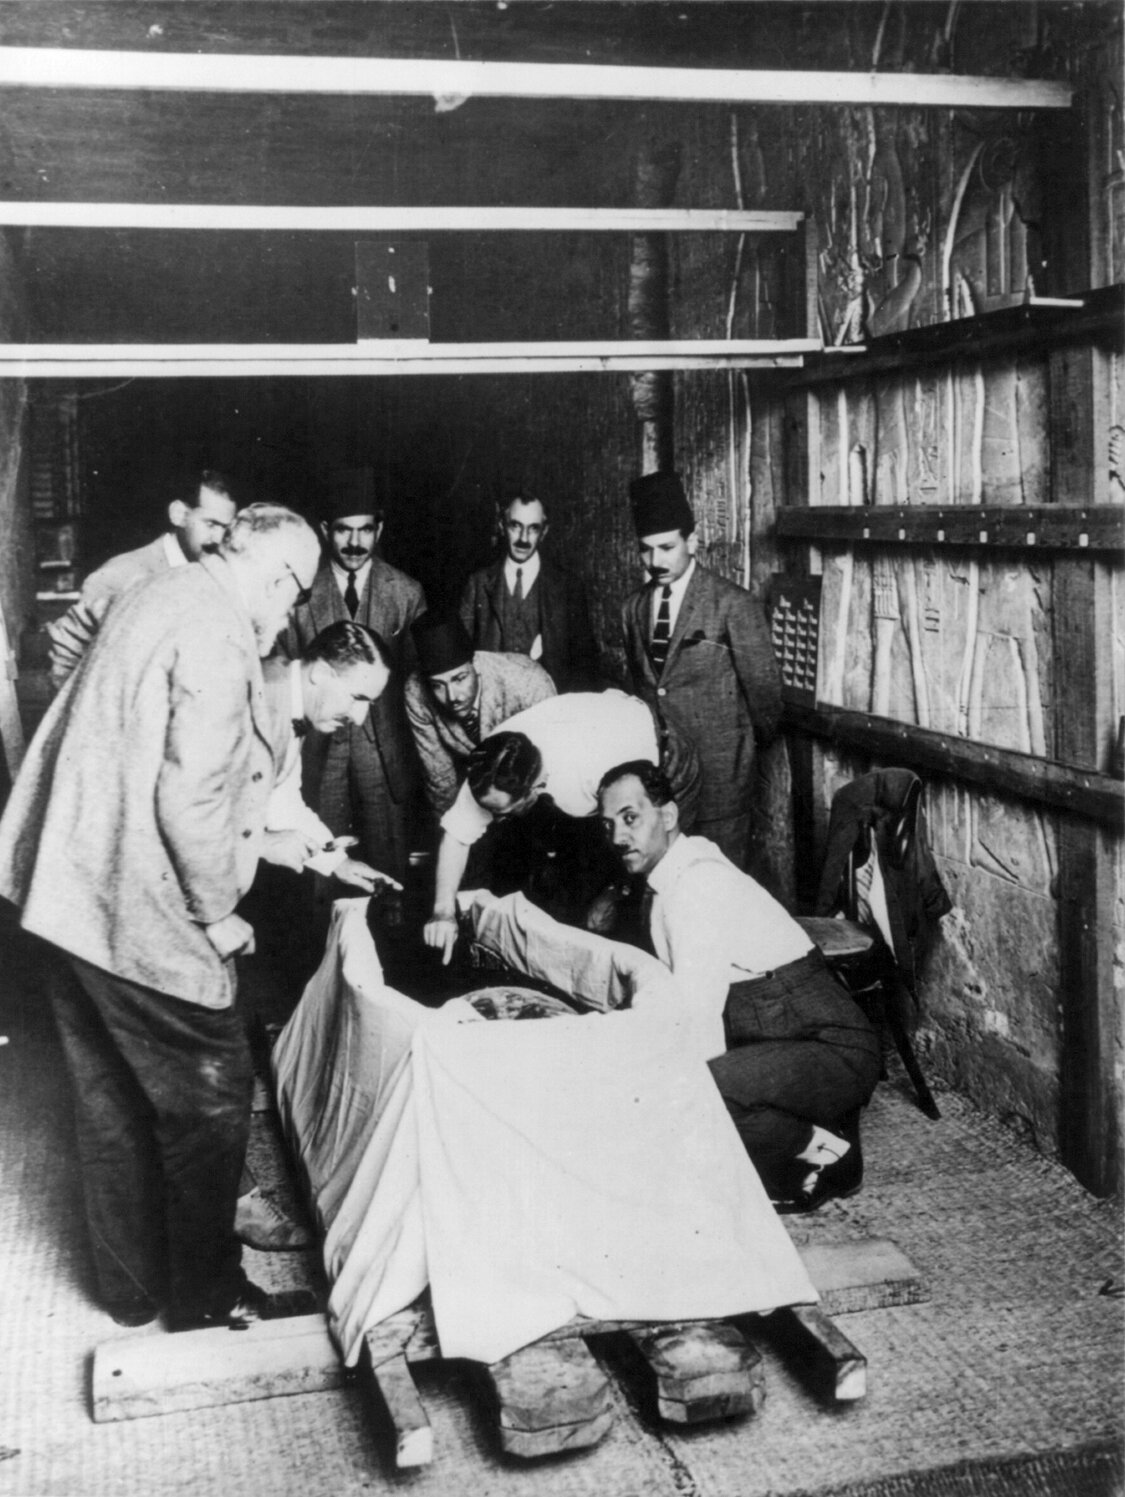 Carter, who discovered Tut's tomb, unveils the mummy in 1925